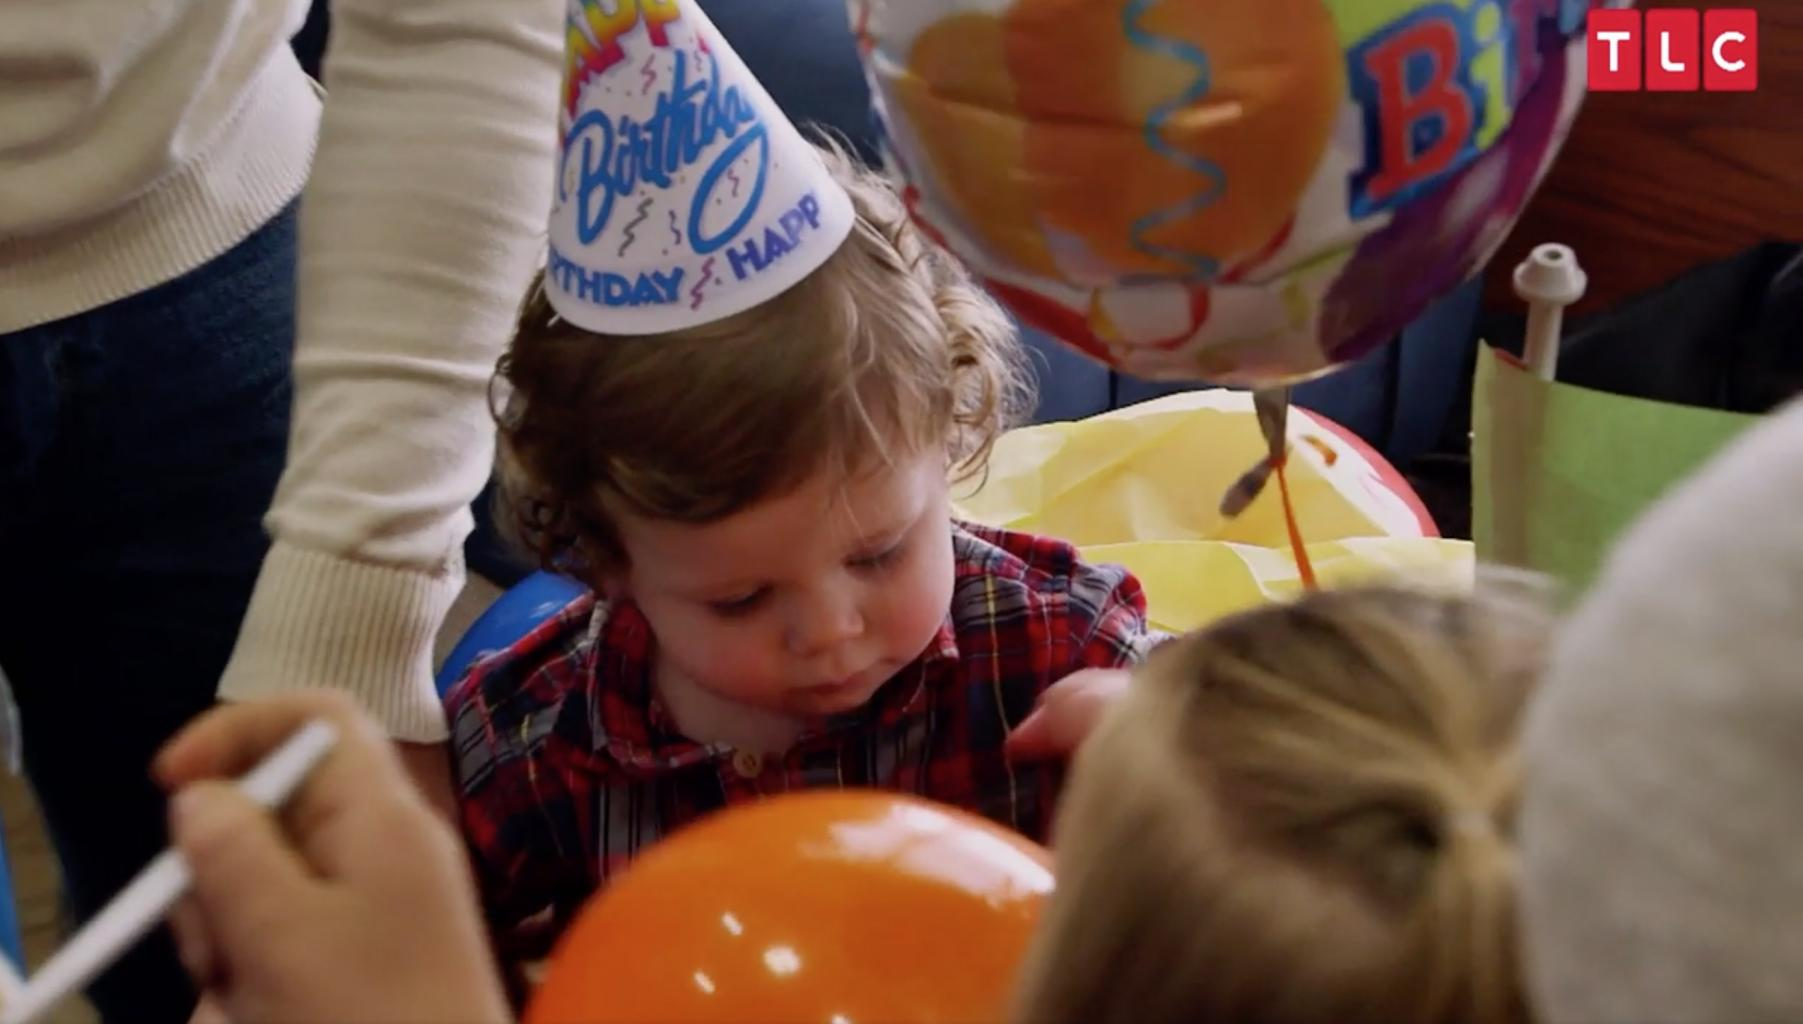 How Jessa Duggar Seewald  's Family Celebrated    Plump, Happy '  Baby Spurgeon  's 1st  Birthday